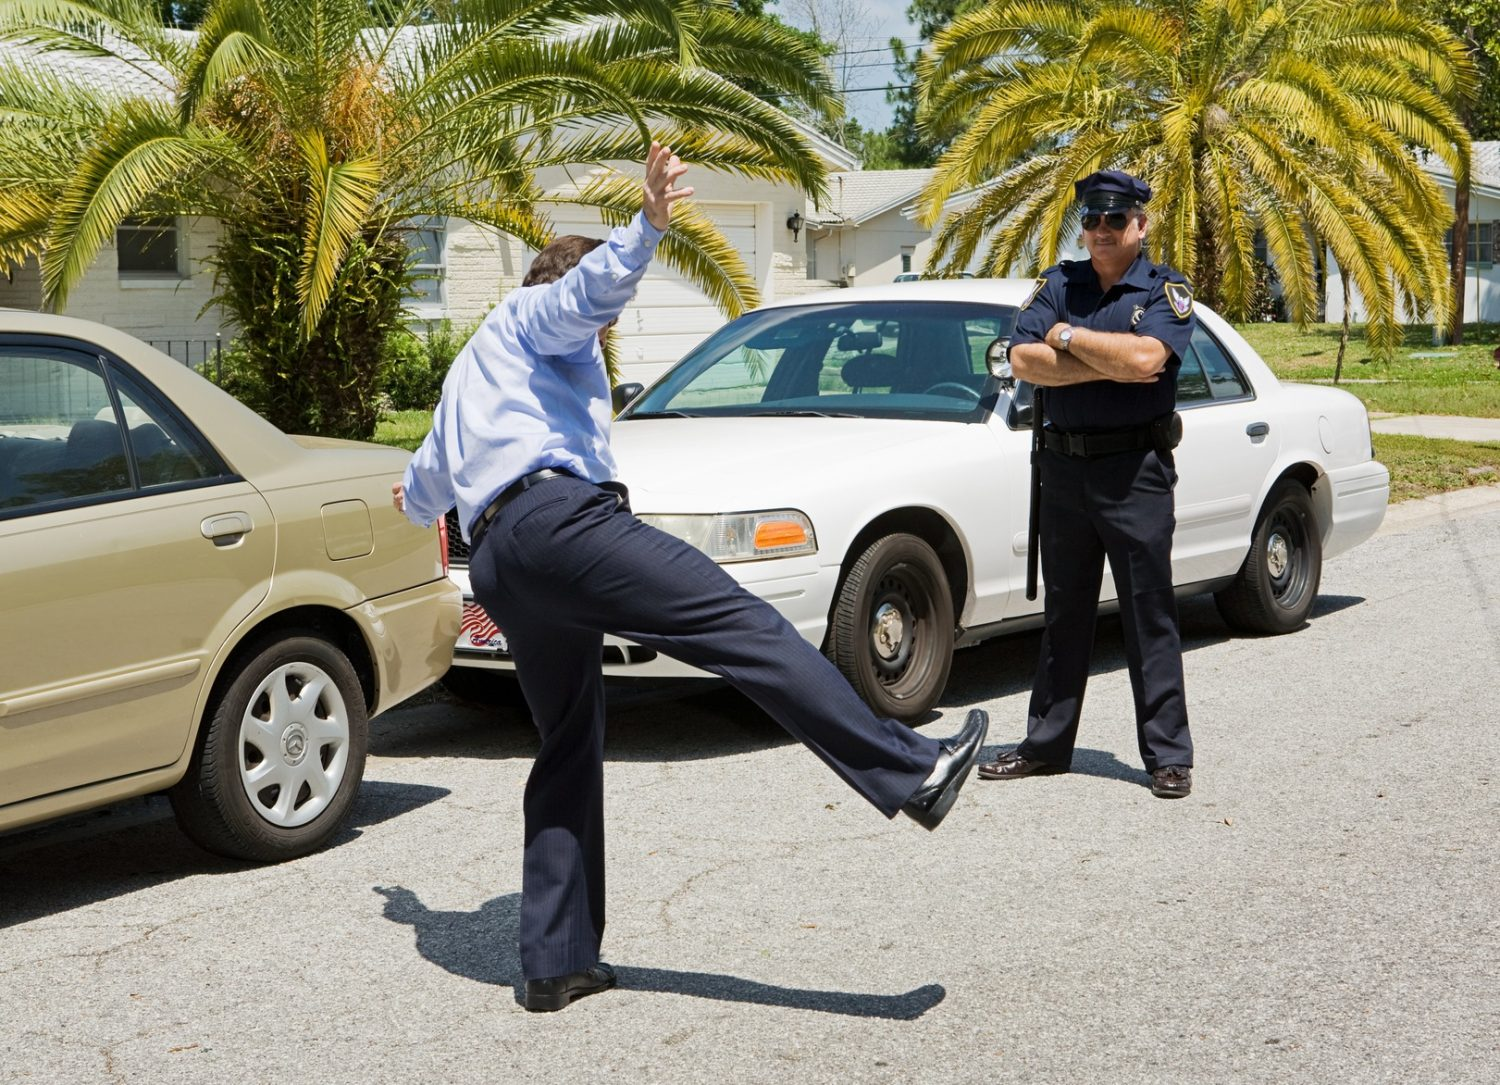 Driving While Intoxicated – The DWI Process